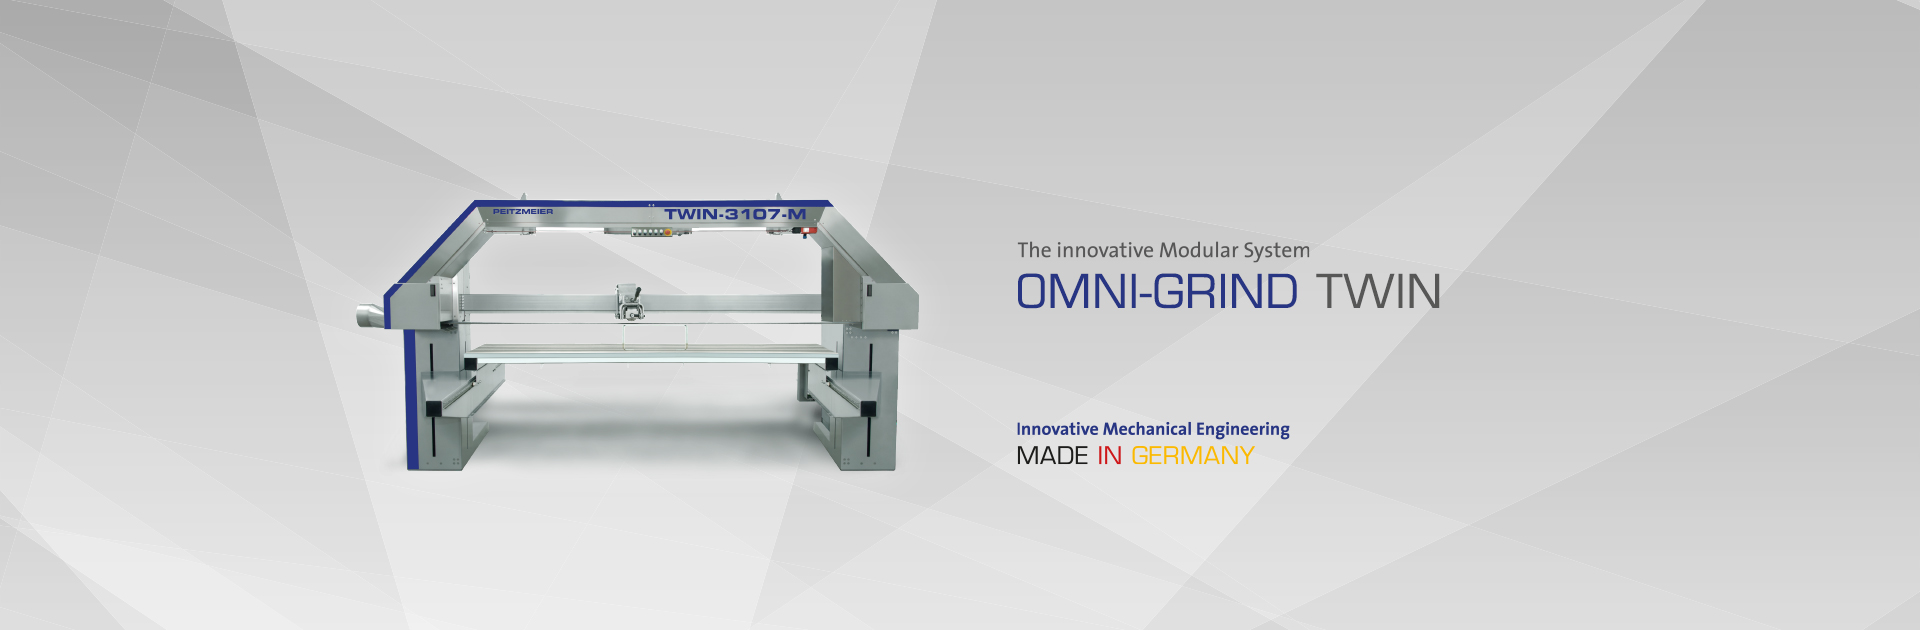 OMNI-GRIND TWIN - The innovative Modular System